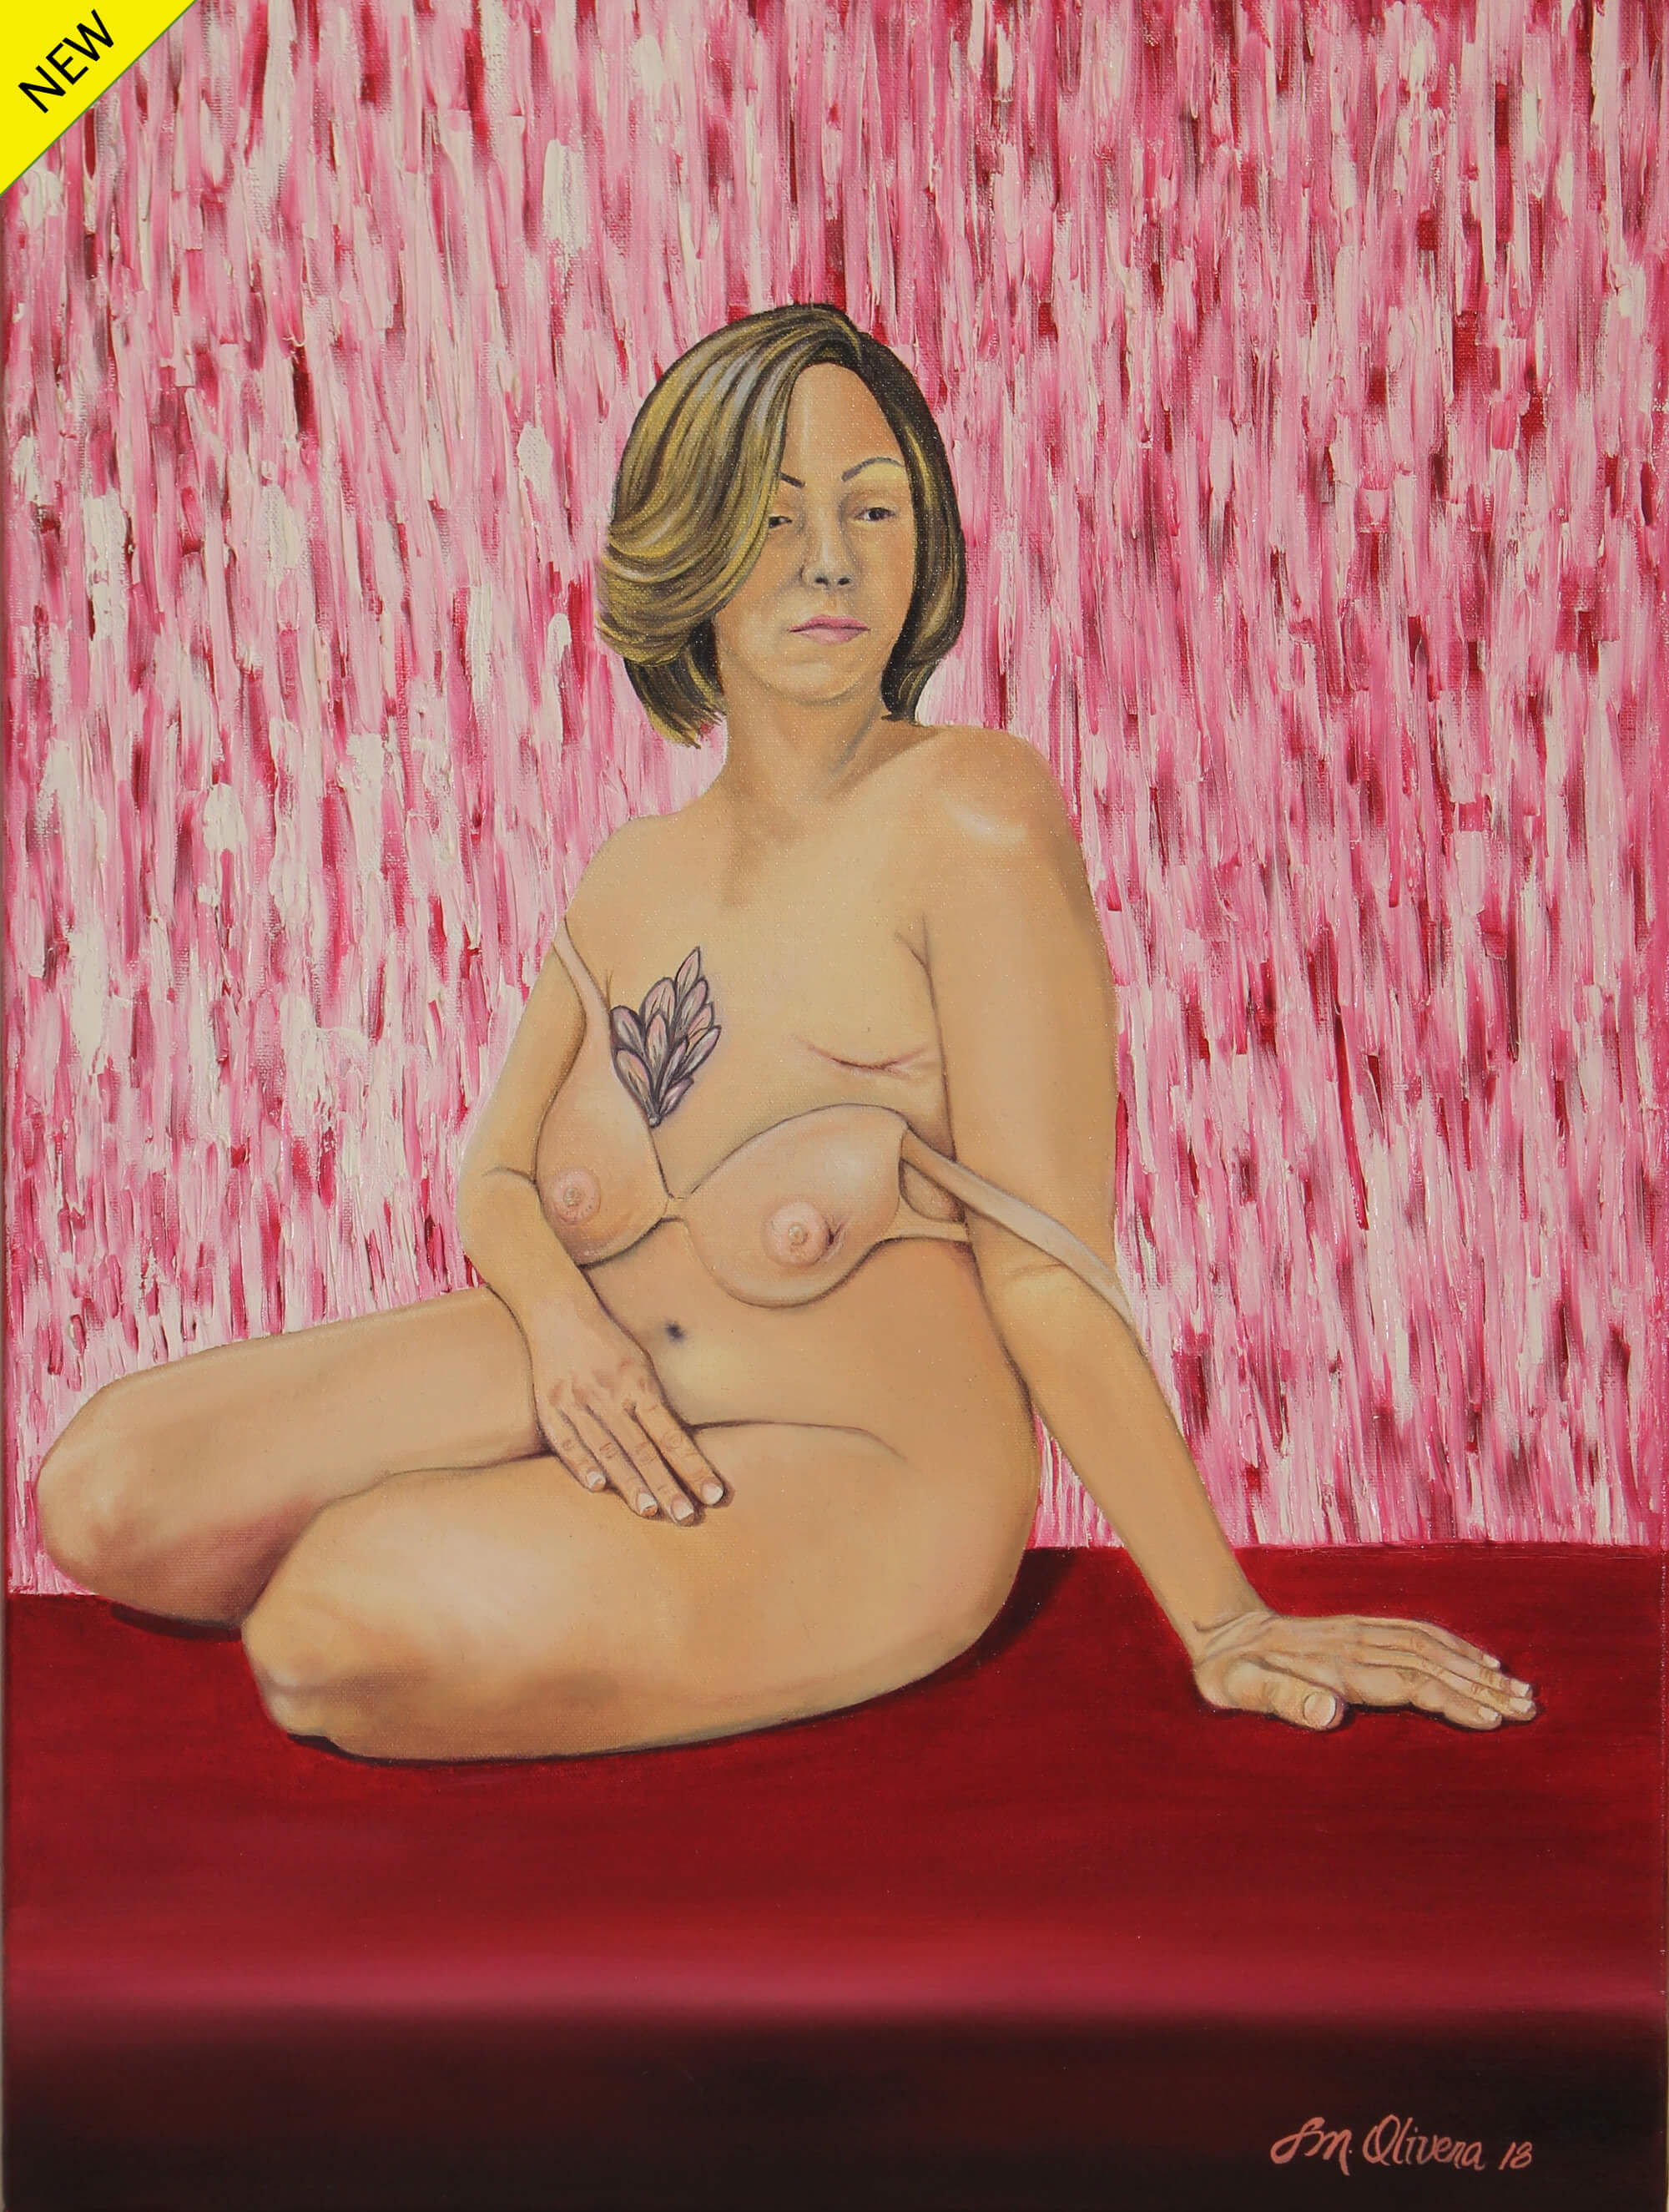 Oil painting of a nude female breast cancer survivor showing the scar of a breast removal operation and a loose breast-like brazier, sitting on a purple surface by Susan Olivera.